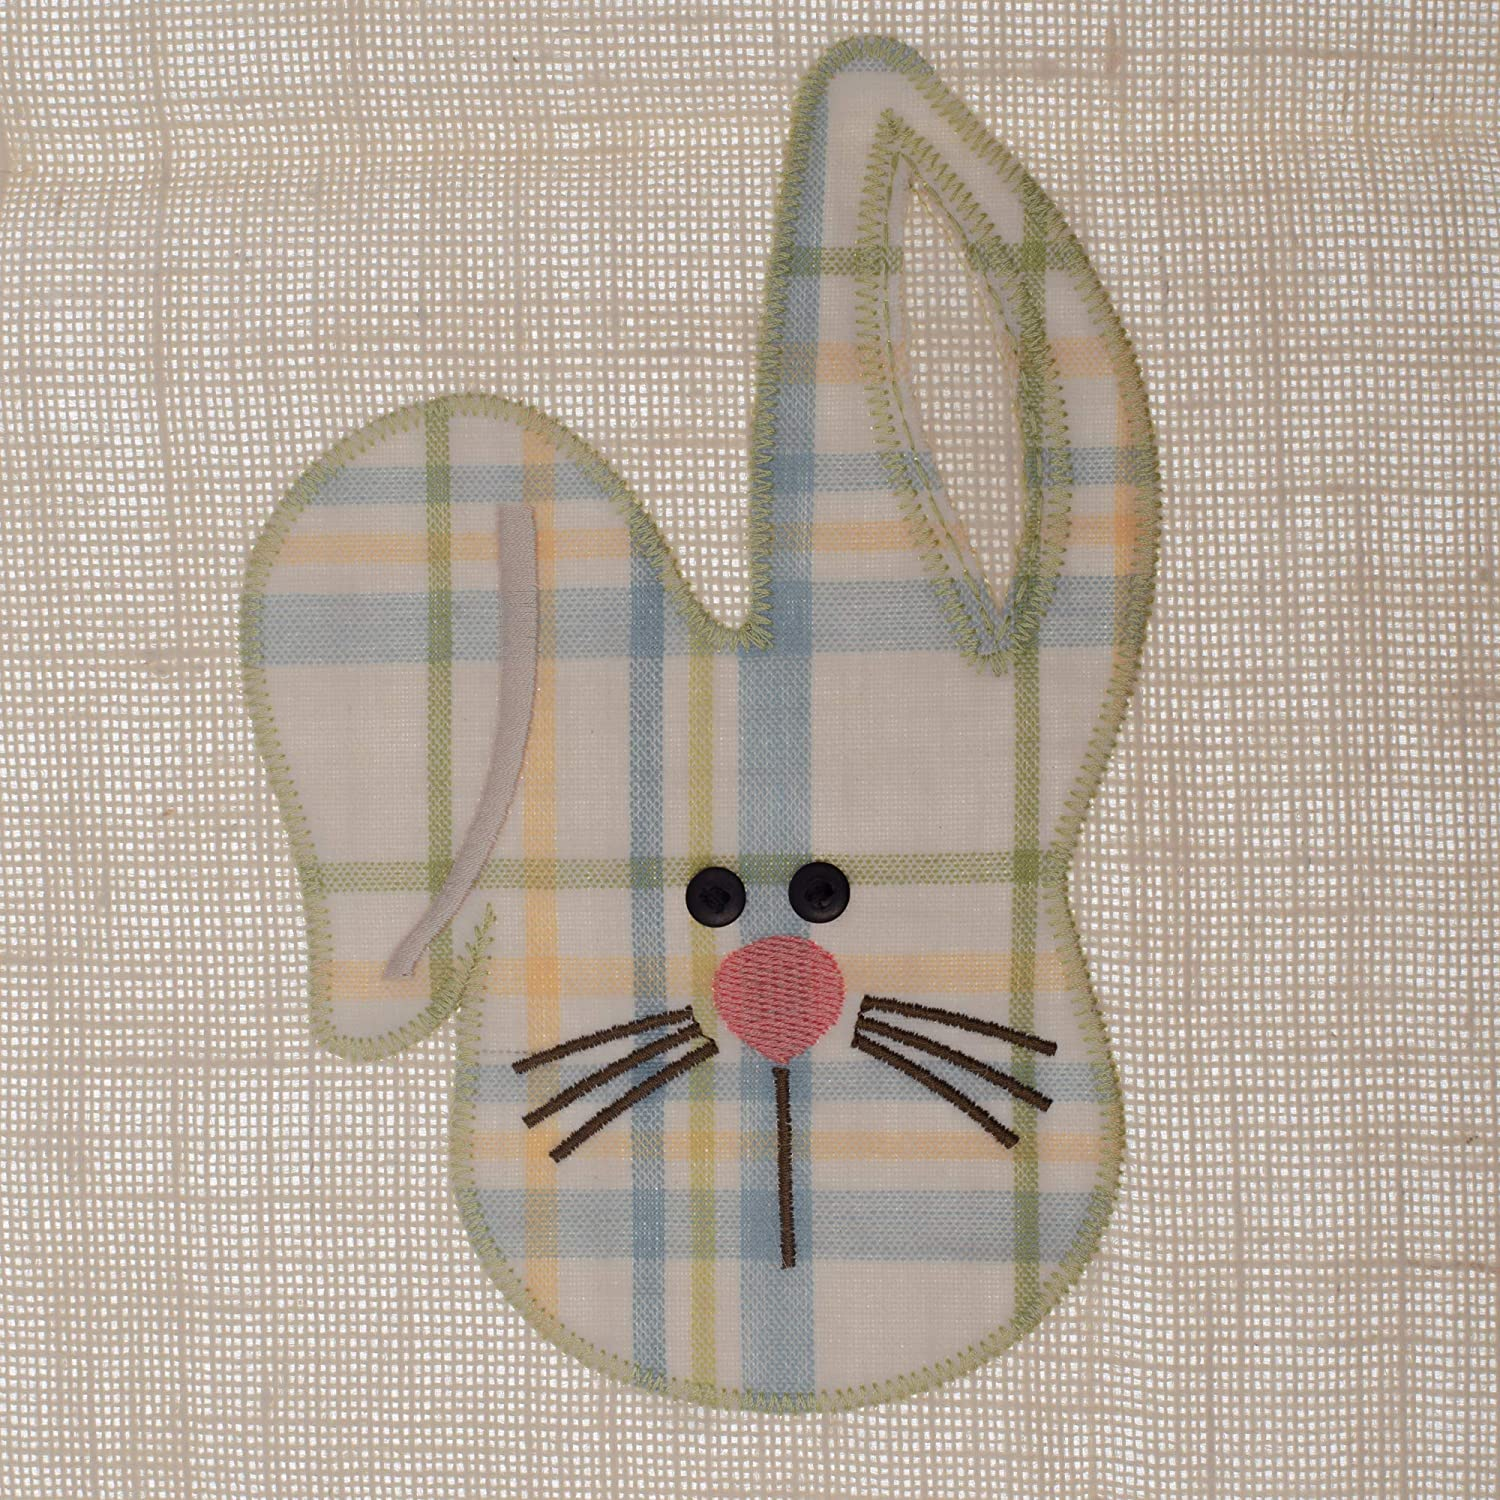 PKD Spring Bunny Head Pastel Plaid 42 x 14 Embroidered Fabric Easter Table Runner Park Designs 507-12B